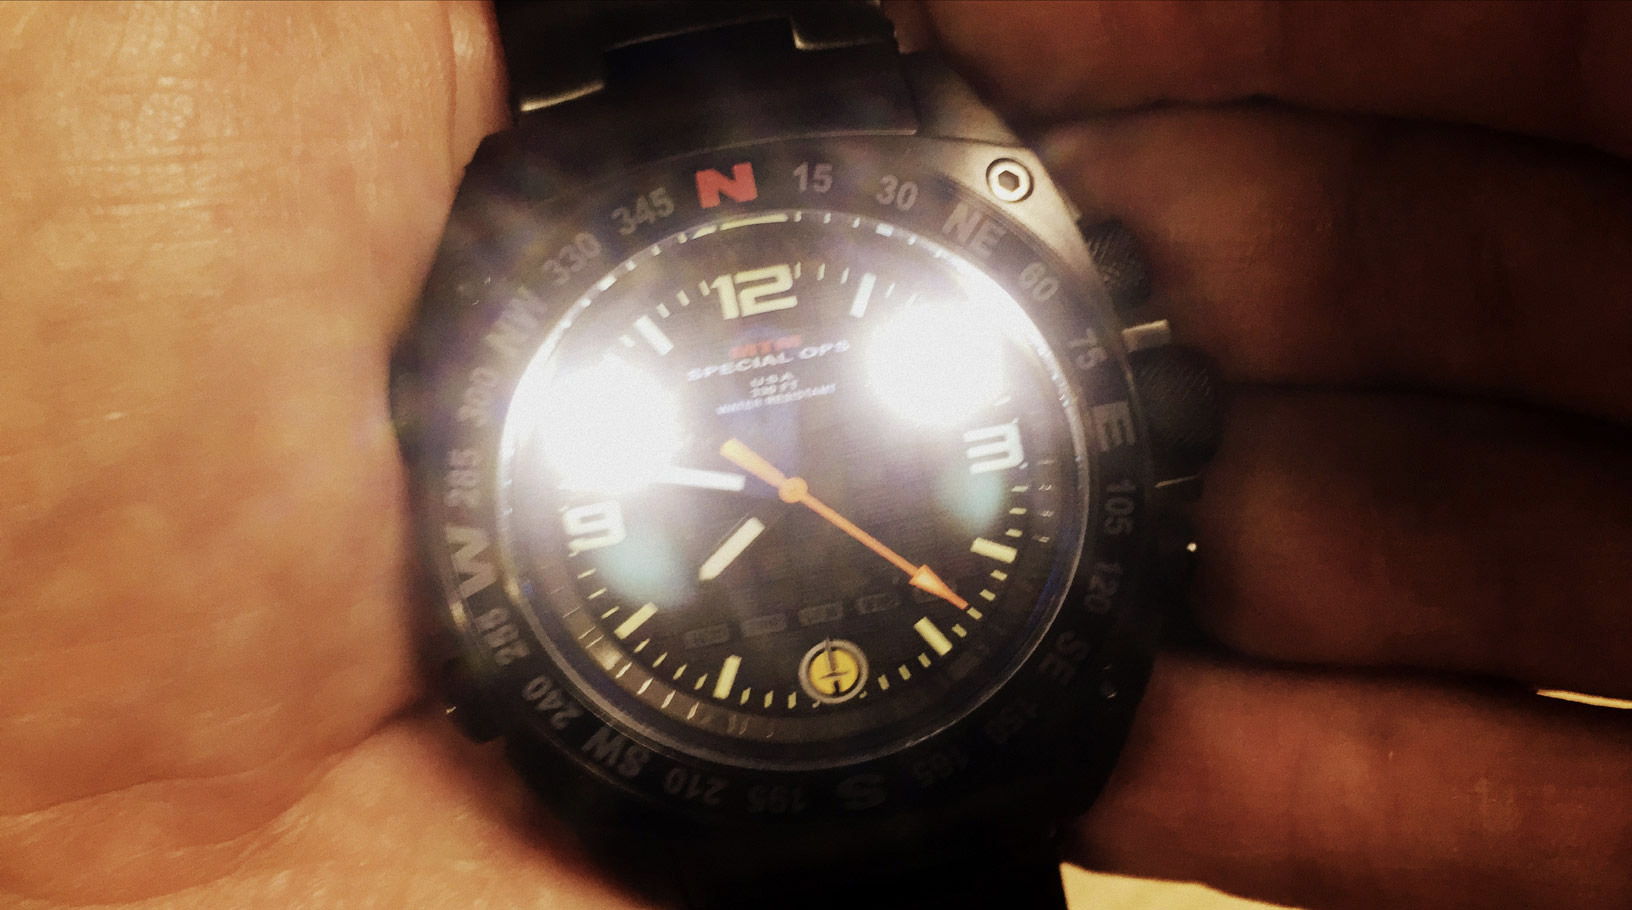 MTM Special Ops Silencer Watch, Multi-Mode Lighting System